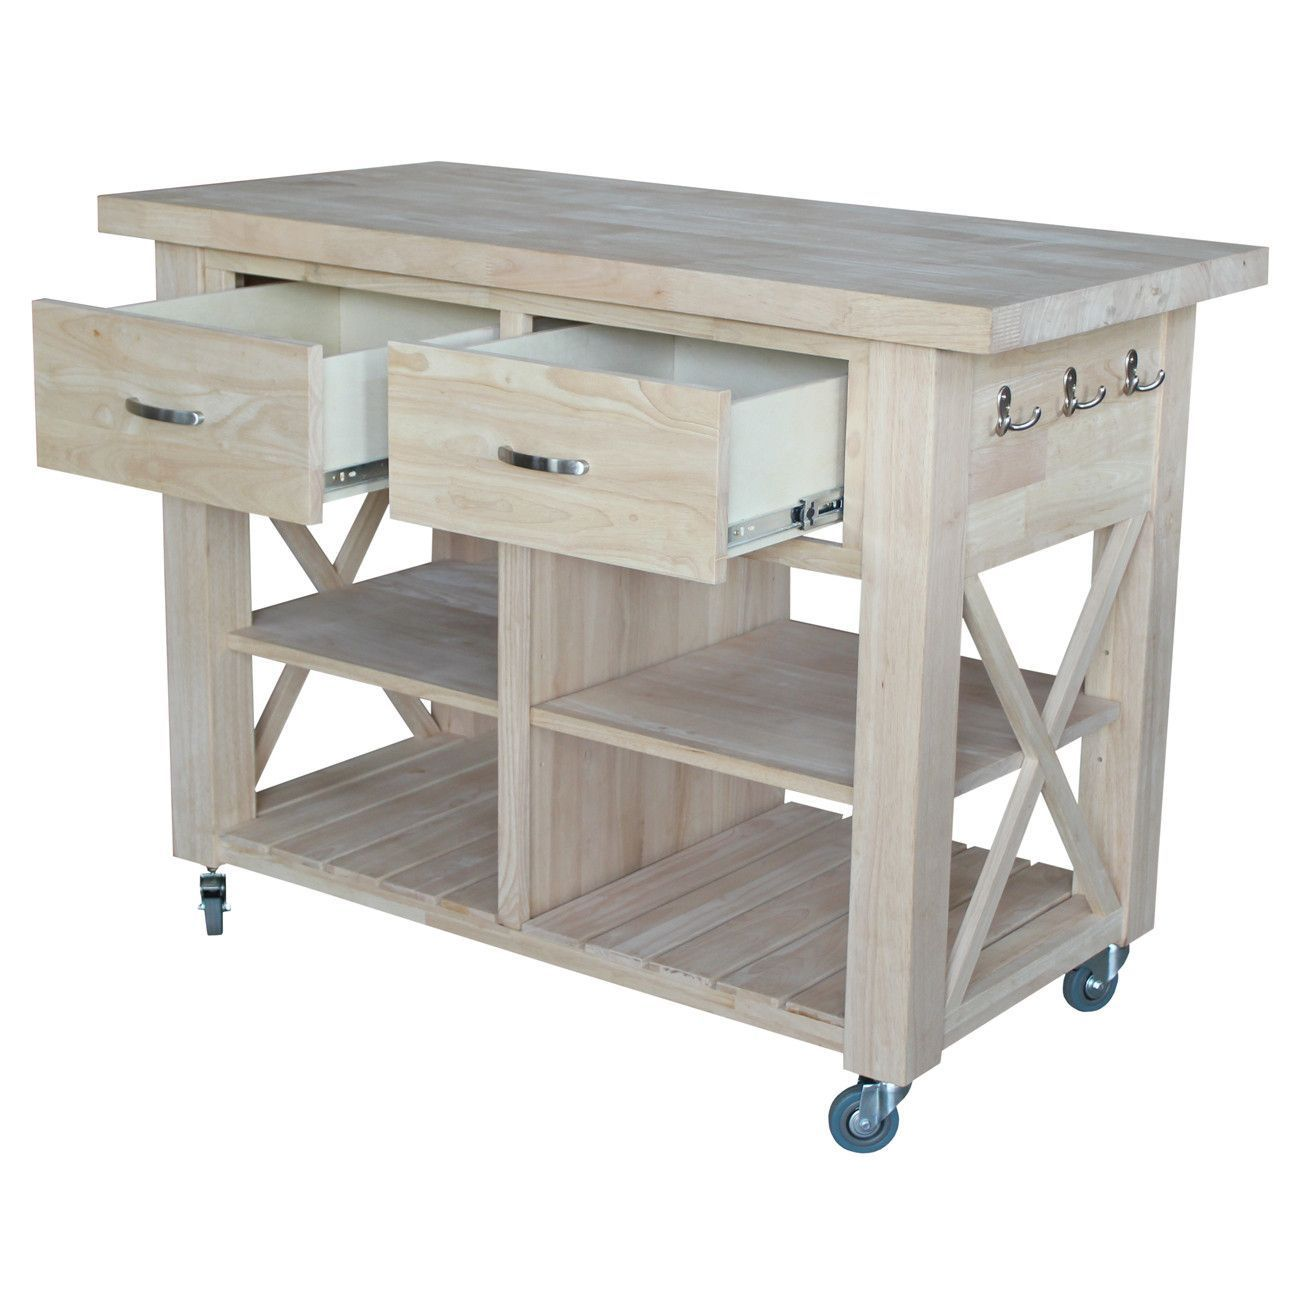 Unfinished X Side Kitchen Island Free Shipping An Unfinished Furniture Expo Online Exclusive Our Unfin Diy Furniture Diy Furniture Plans Unfinished Furniture